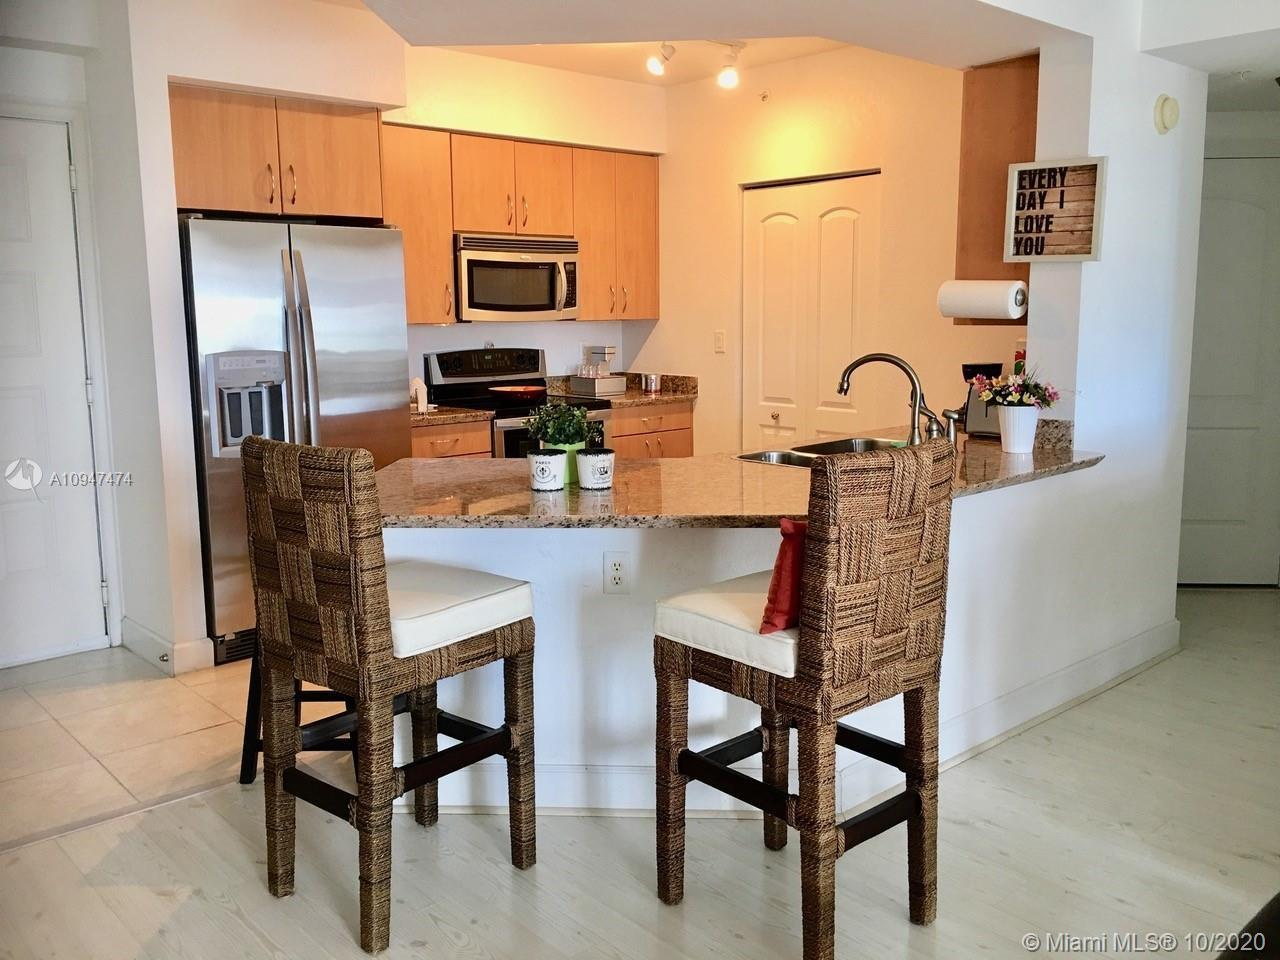 This corner unit overlooks the beautiful city of Hollywood with just below it there are restaurants,